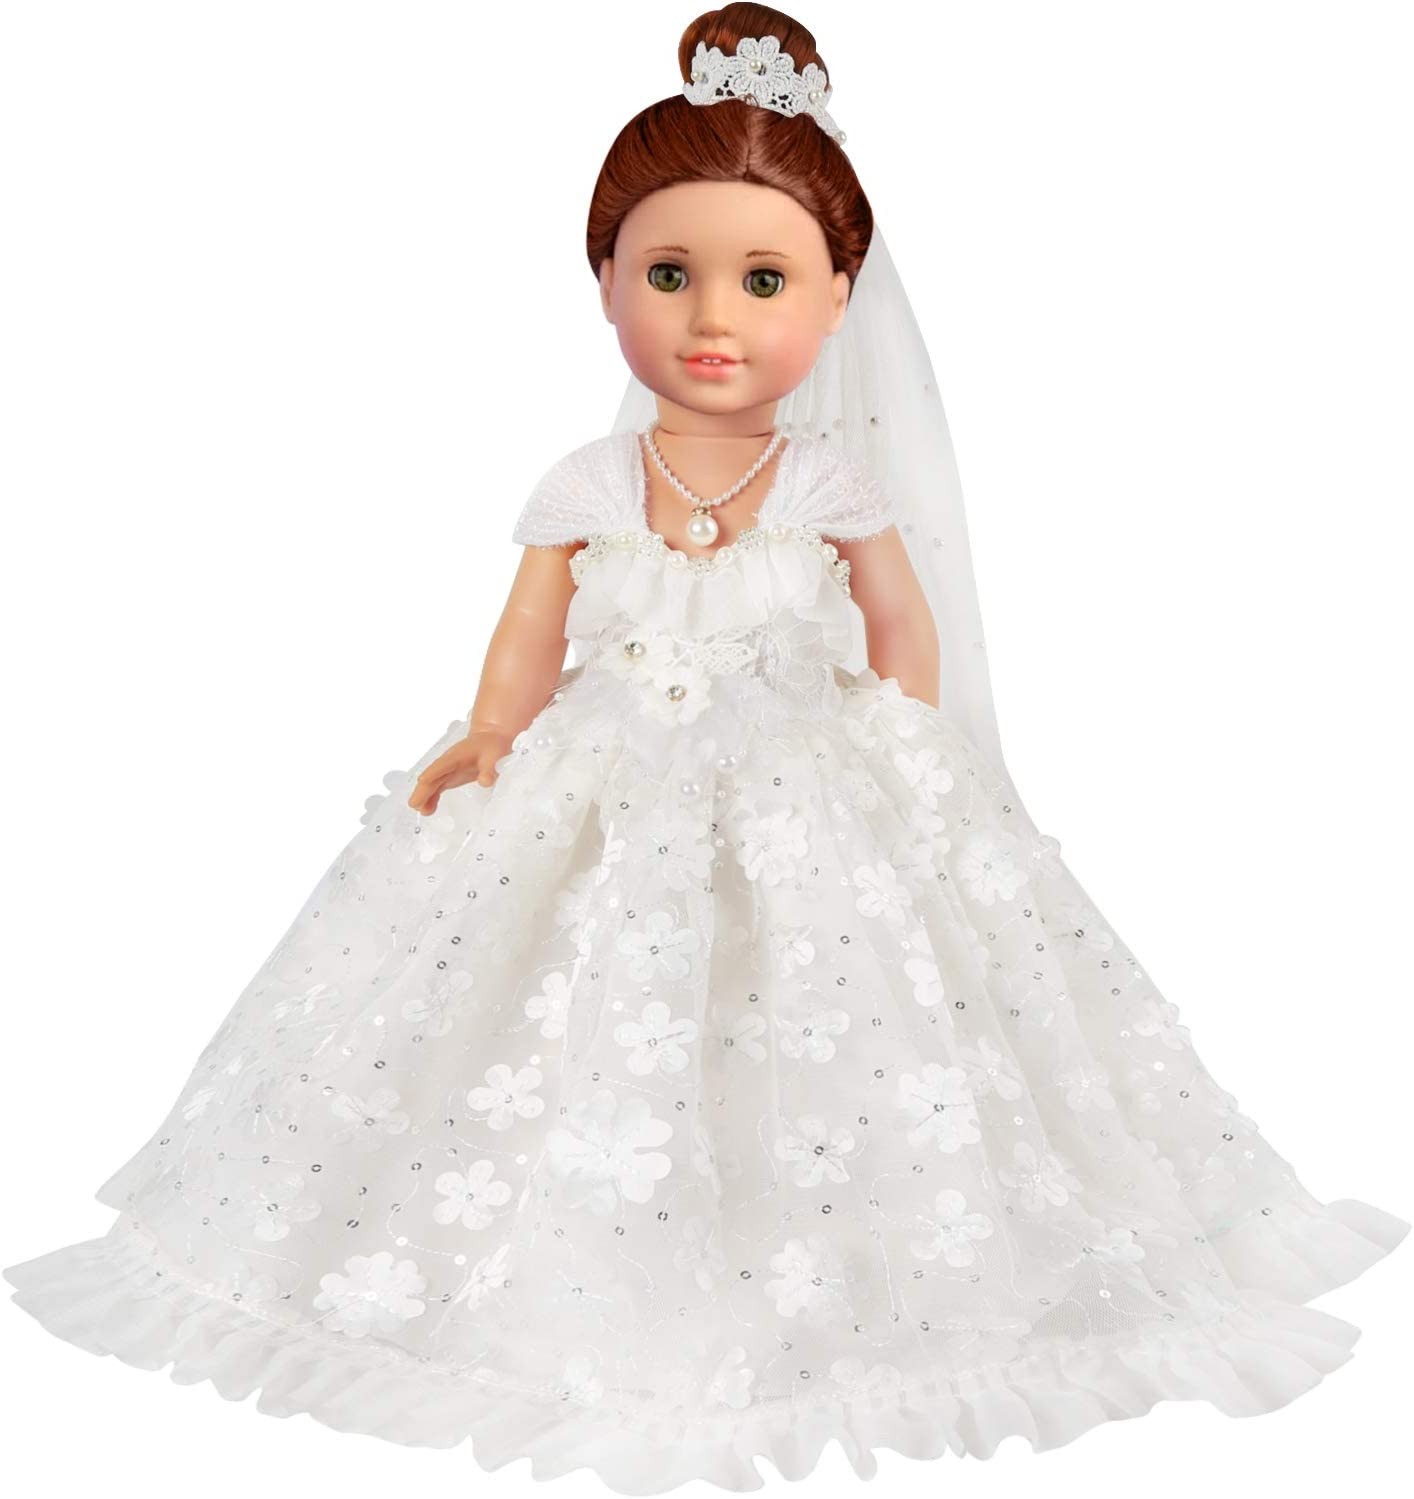 3 PCS KYToy 18 Inch Doll White Wedding Outfit for American Doll Clothes and Accessories Girl Bride Flower Pearl Wedding Dress Gown with Veil and Necklace Set